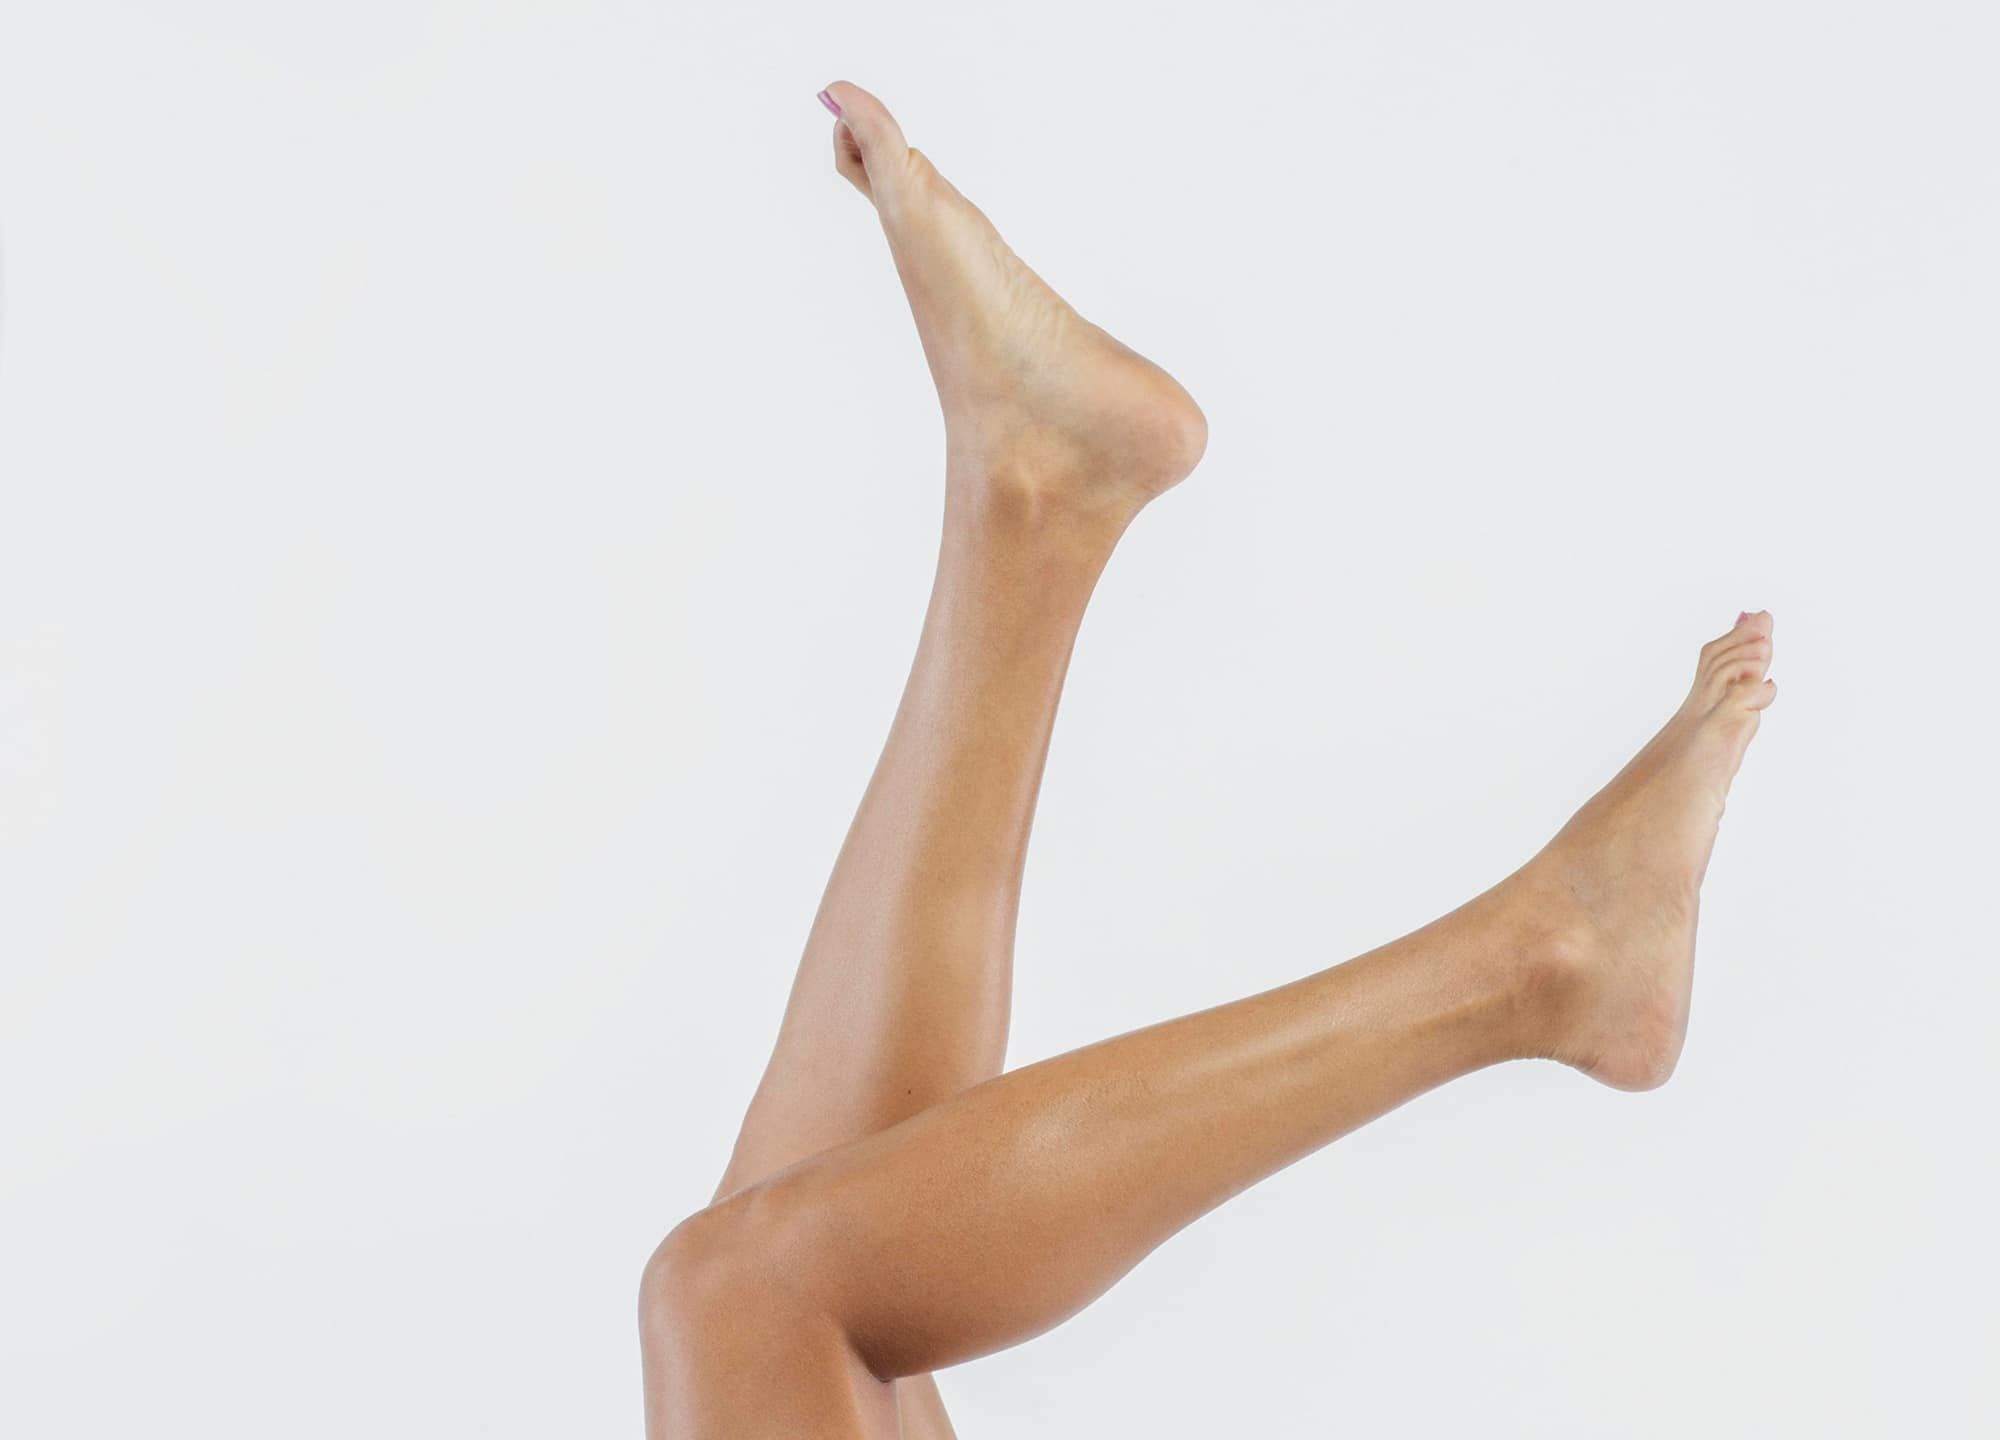 From the balls of the feet to hip dips, here are the top 7 ...